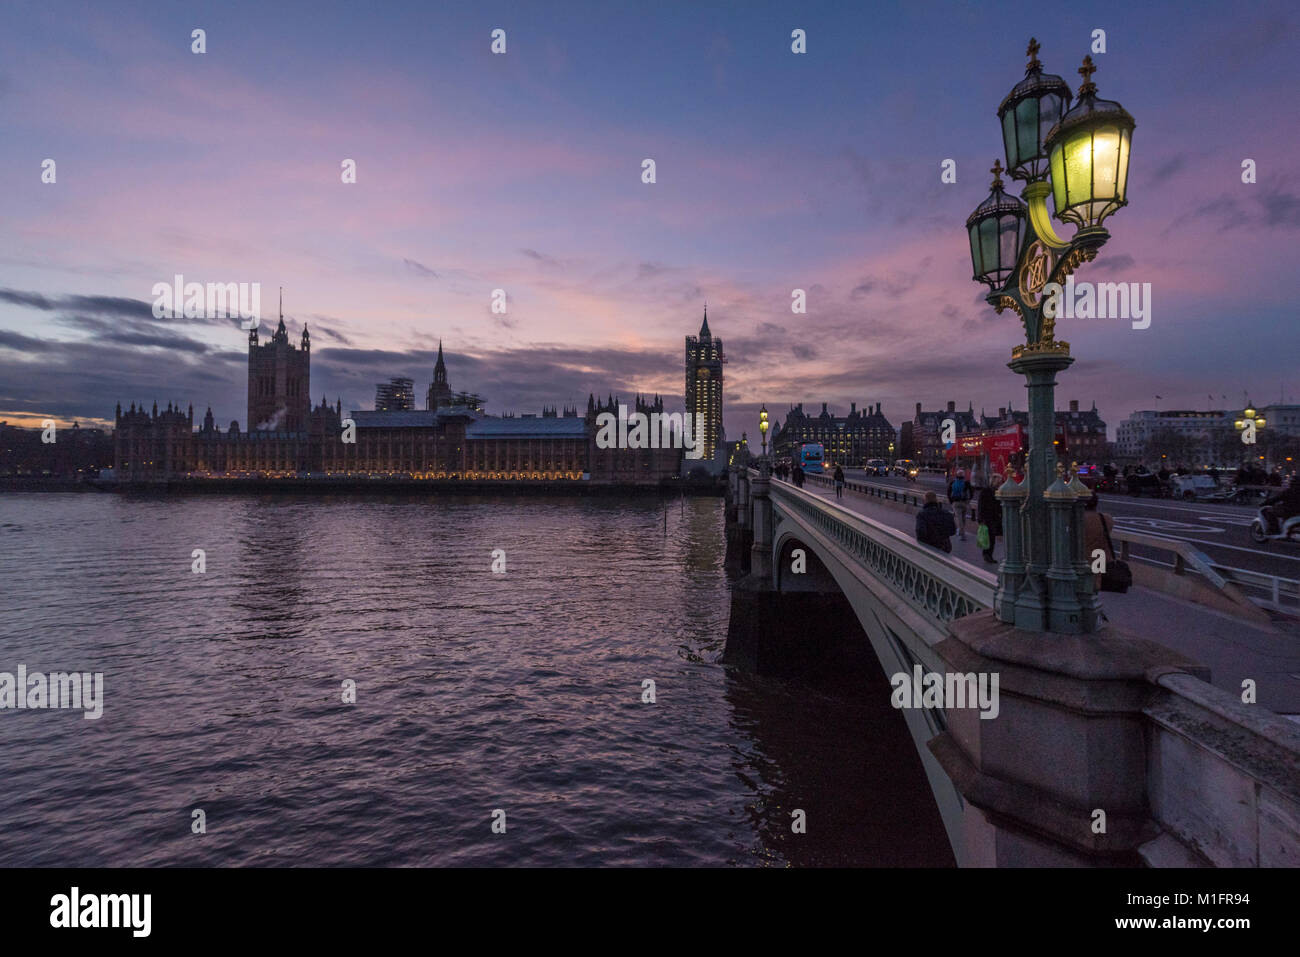 London, UK.  30 January 2018.  UK Weather:  The sun sets behind The Houses of Parliament in Westminster, which is Stock Photo